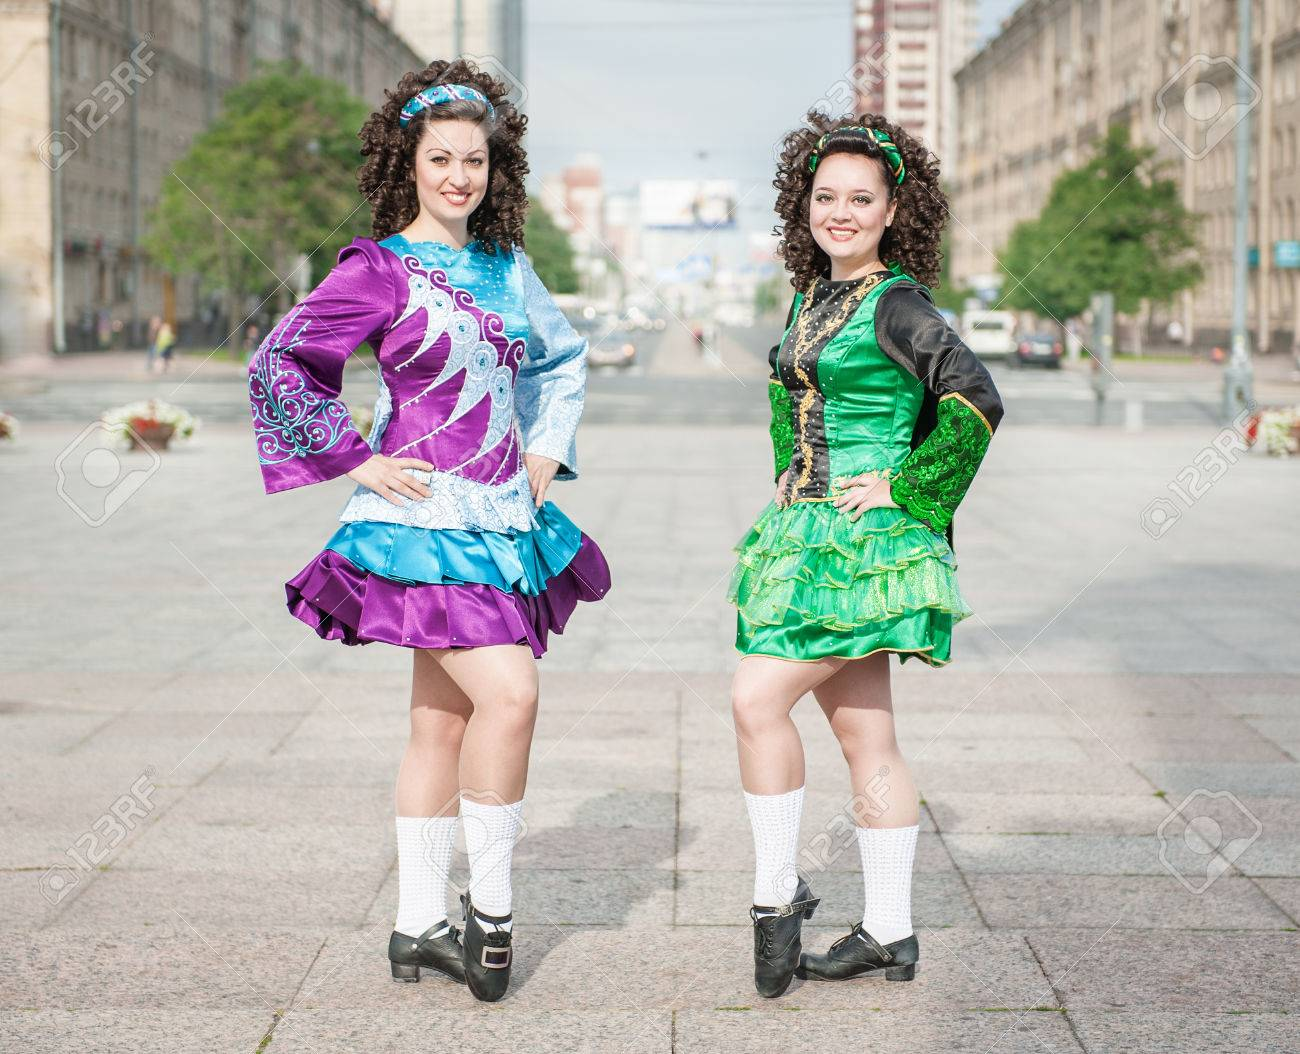 Two Women In Irish Dance Dresses And Wig Posing Outdoor Stock Photo ... ab9d06c1f4